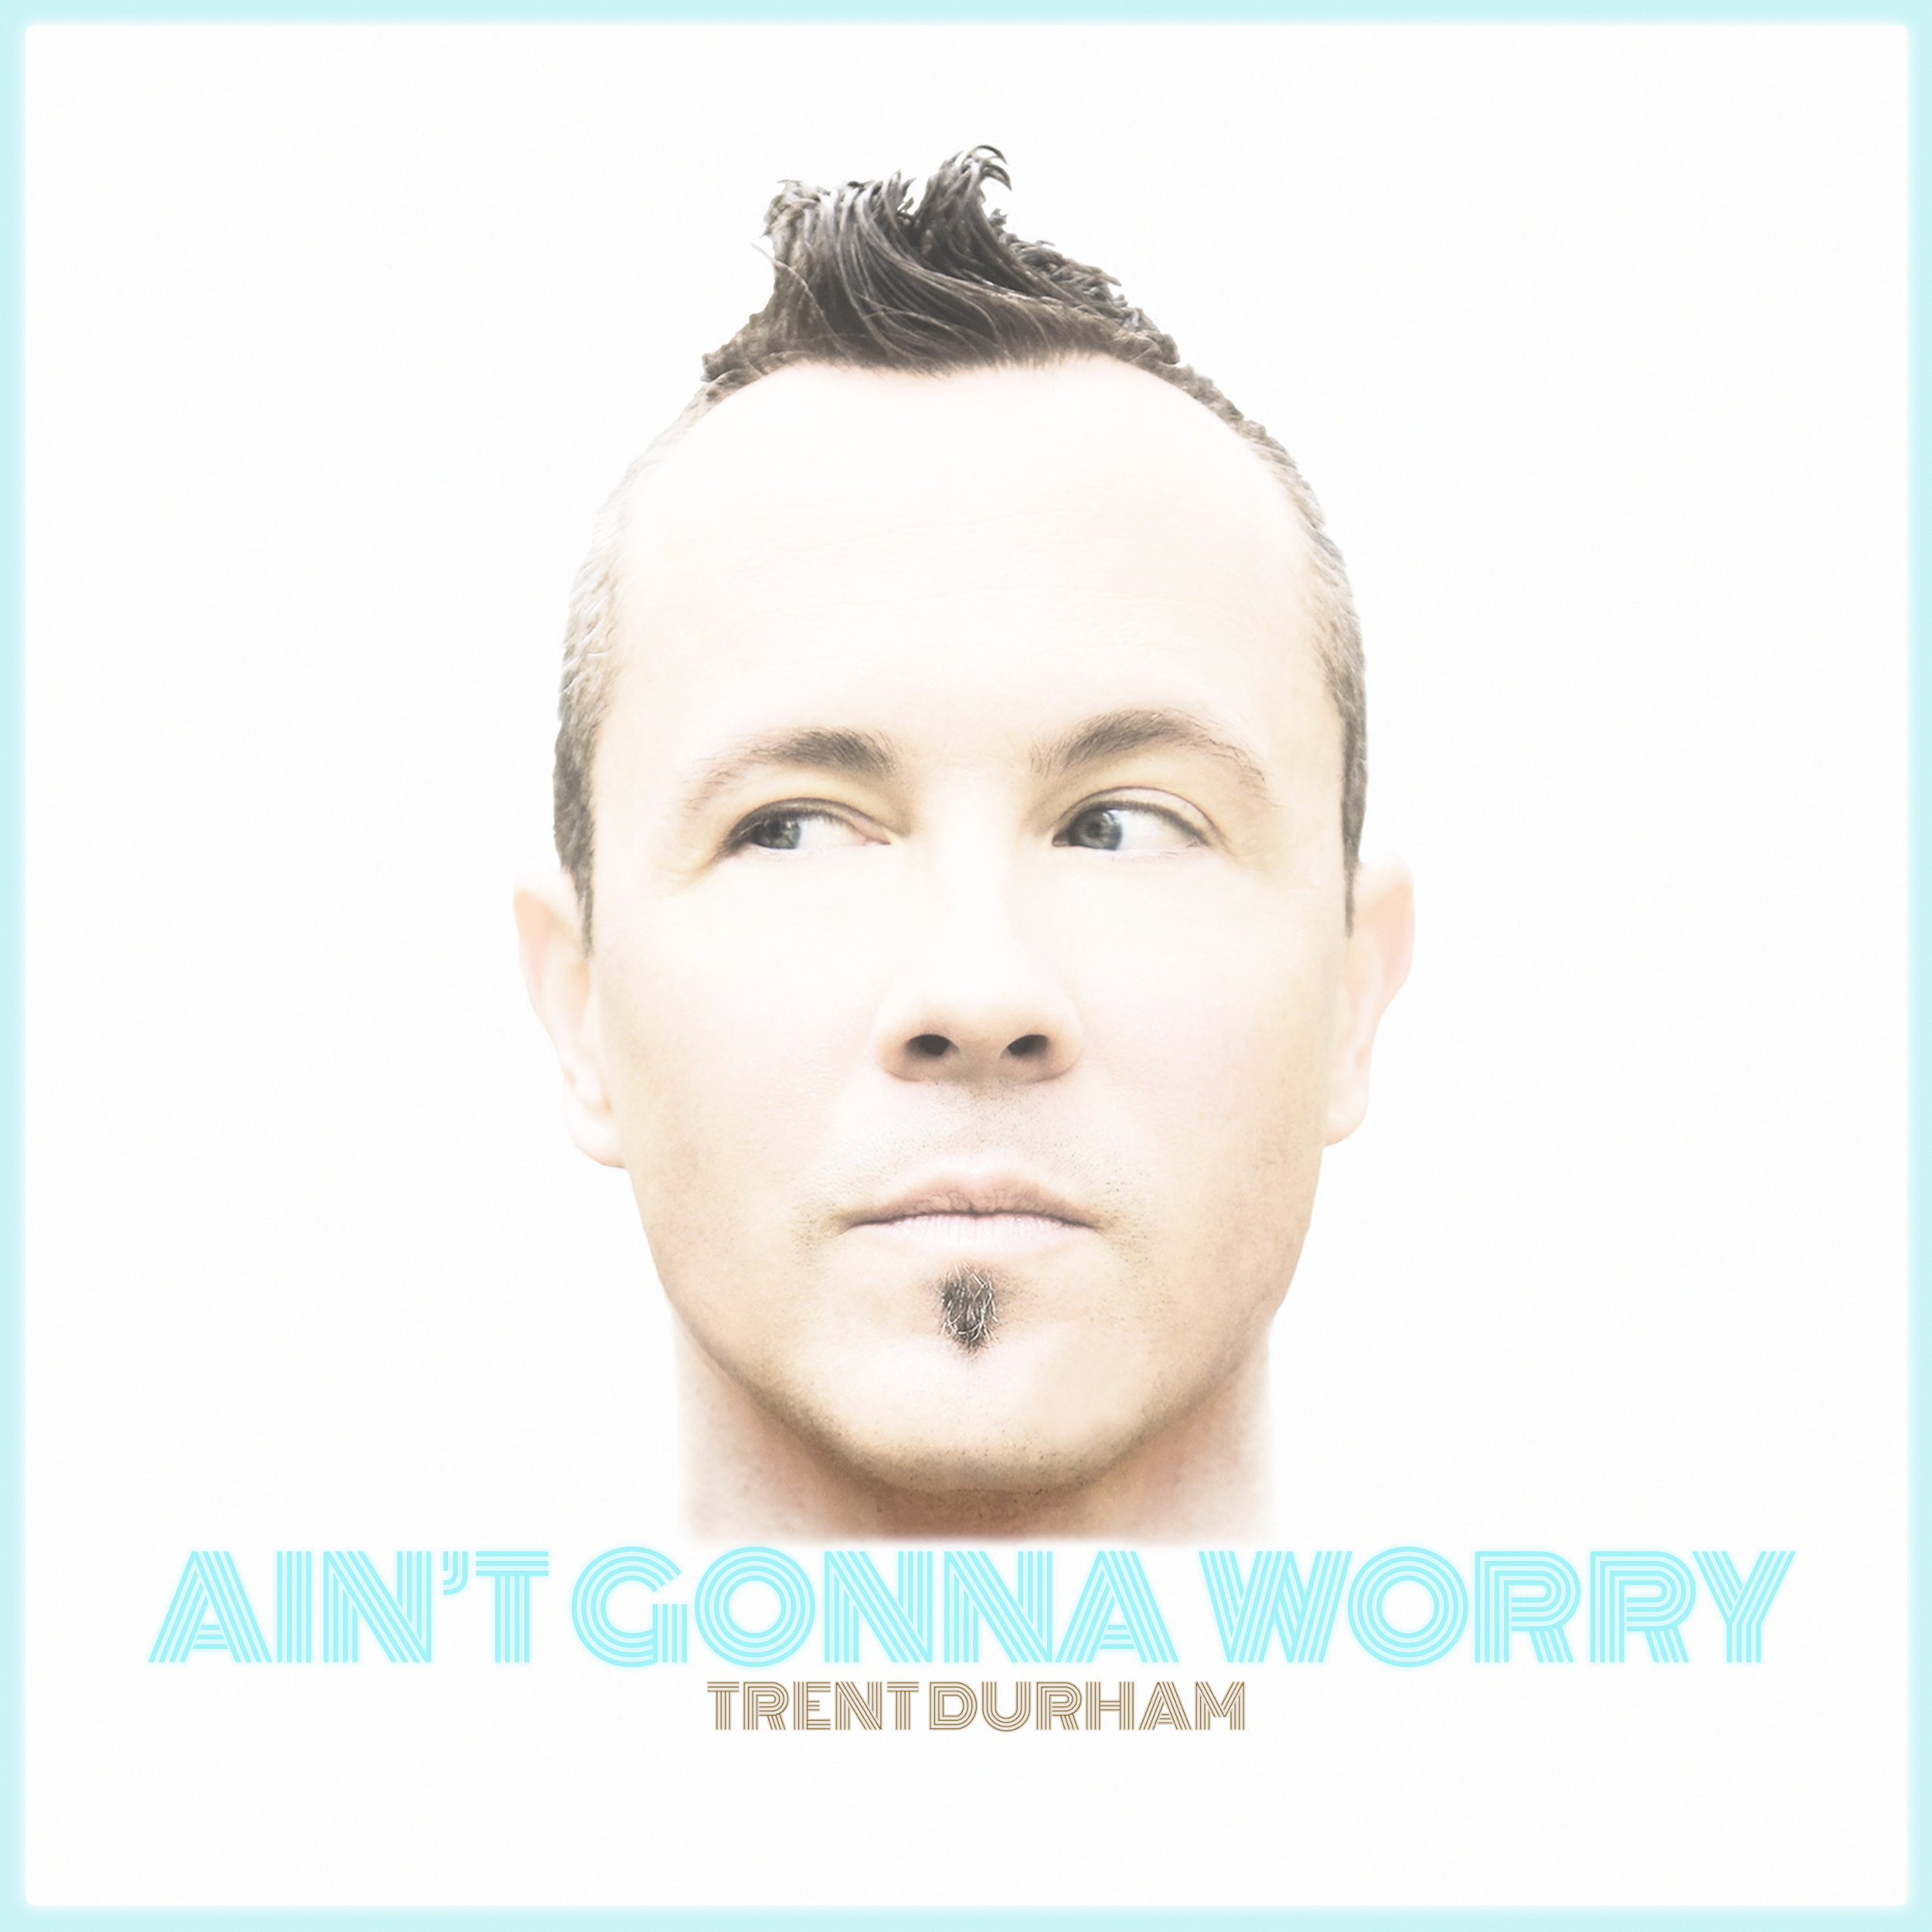 Aint Gonna Worry Single Art (CU).jpg